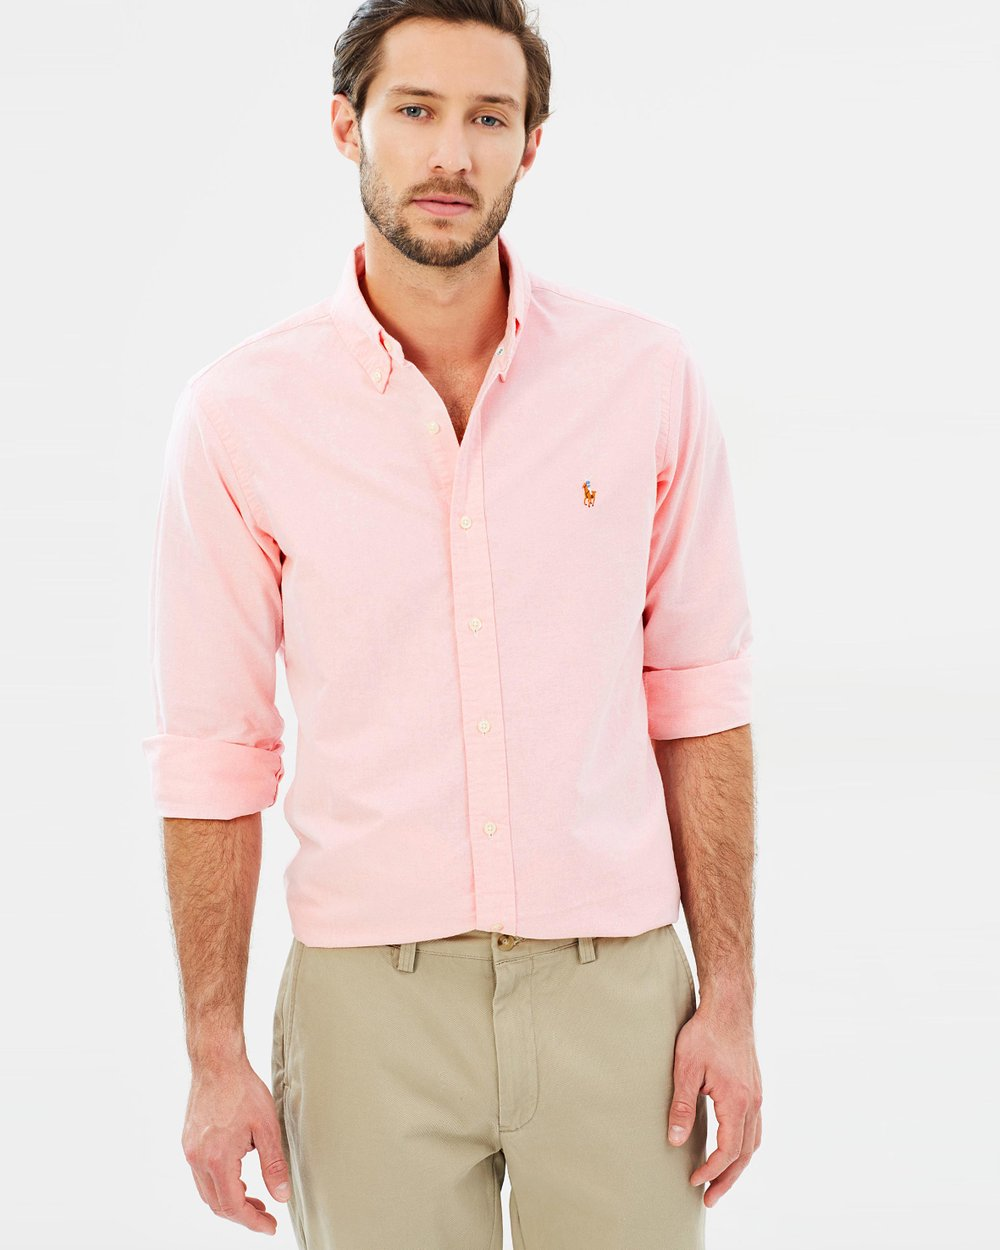 984ba3b6 Core Fit Oxford Shirt by Polo Ralph Lauren Online | THE ICONIC | Australia